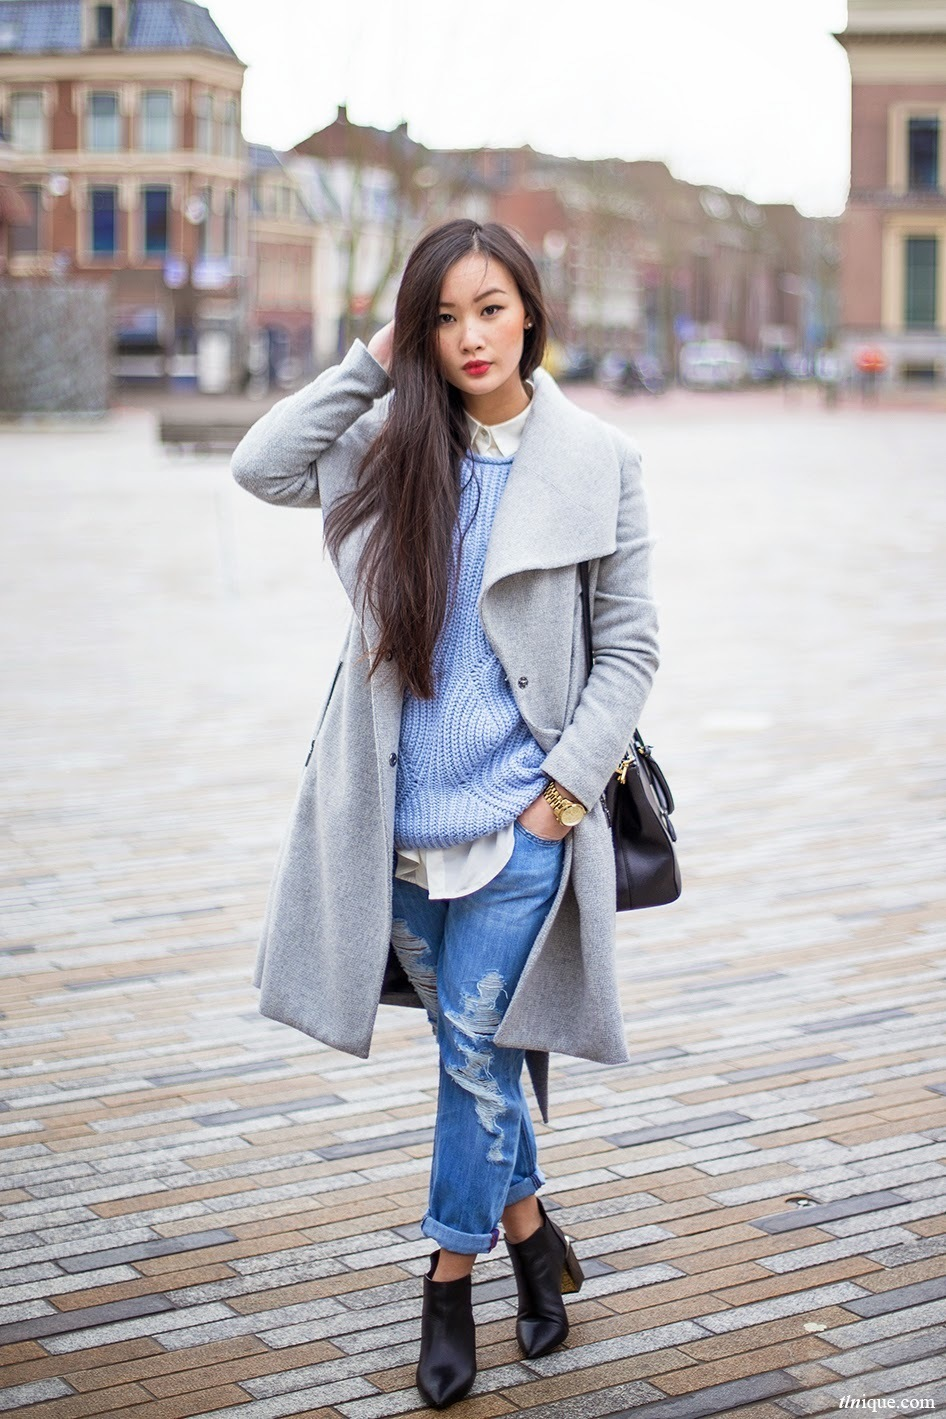 How to oversized wear boyfriend sweater advise dress in spring in 2019